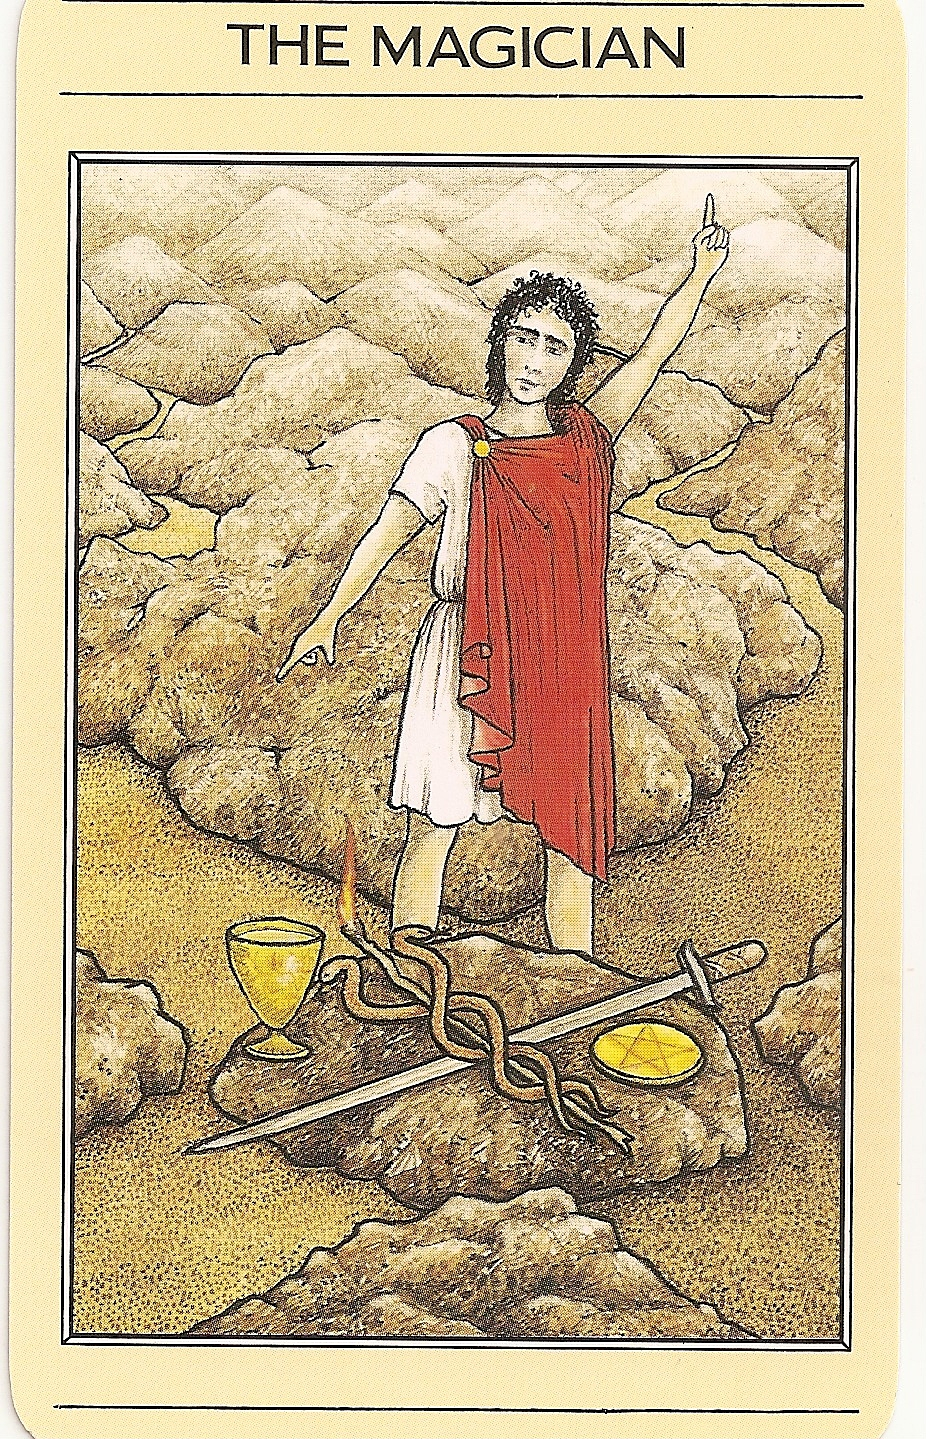 The Magician Tarot: Tarot And More: 4) Tarot Symbolism: The Caduceus: